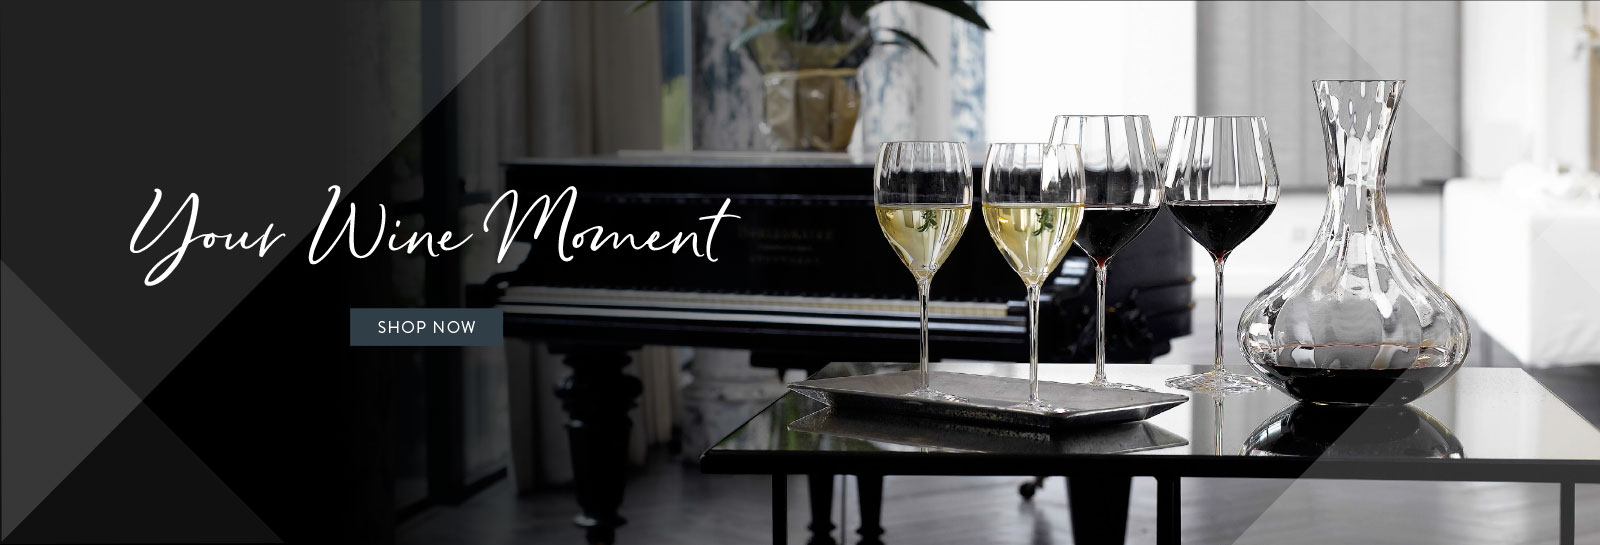 your wine moment - October